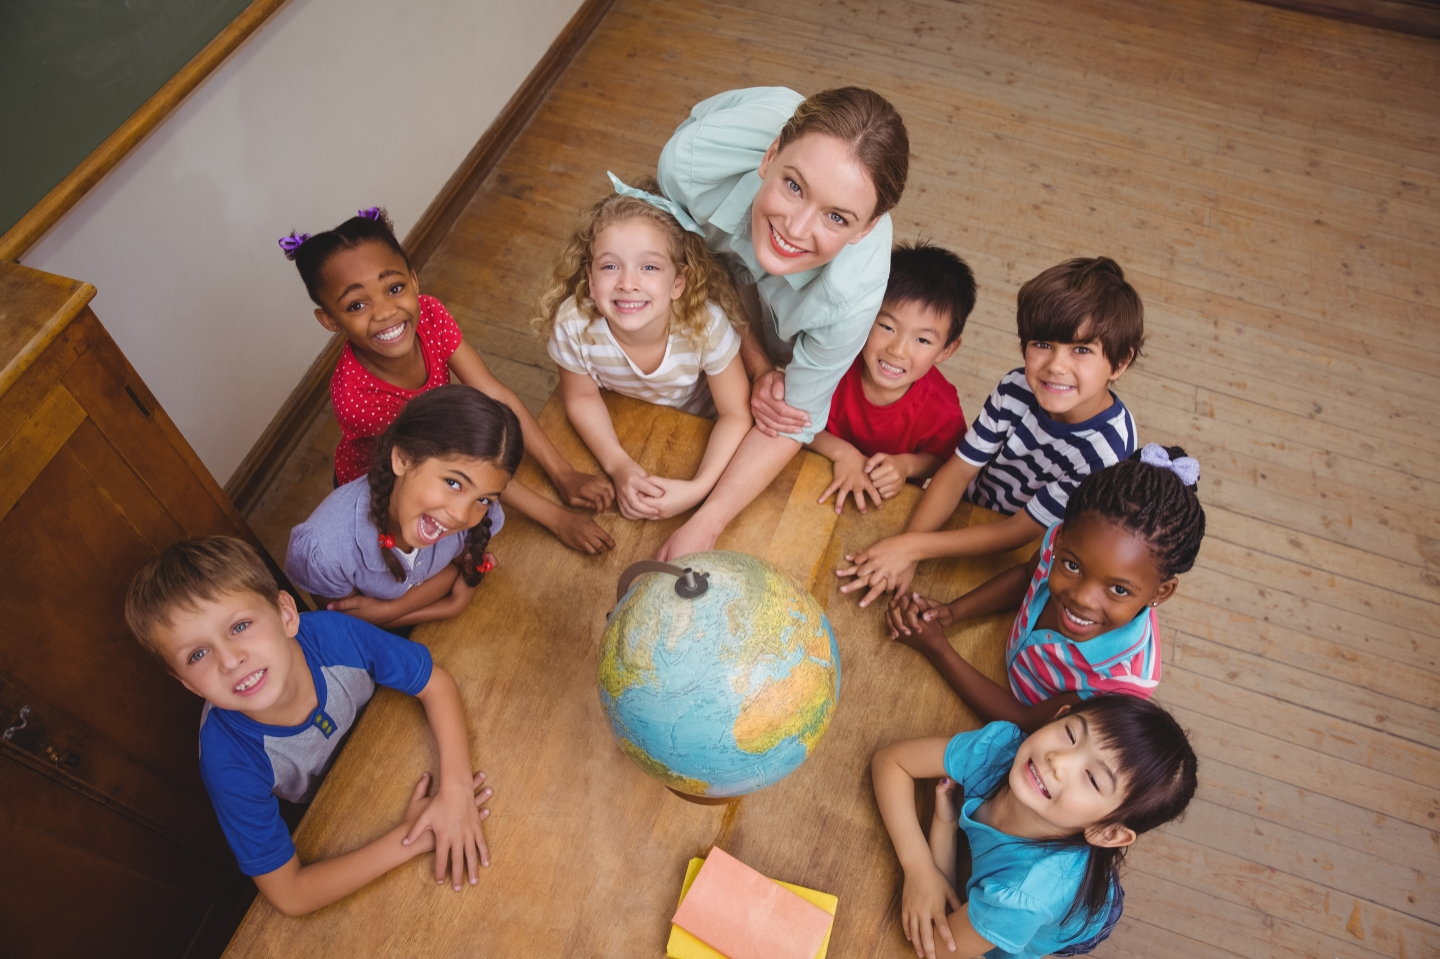 Children gathered around globe with a teacher